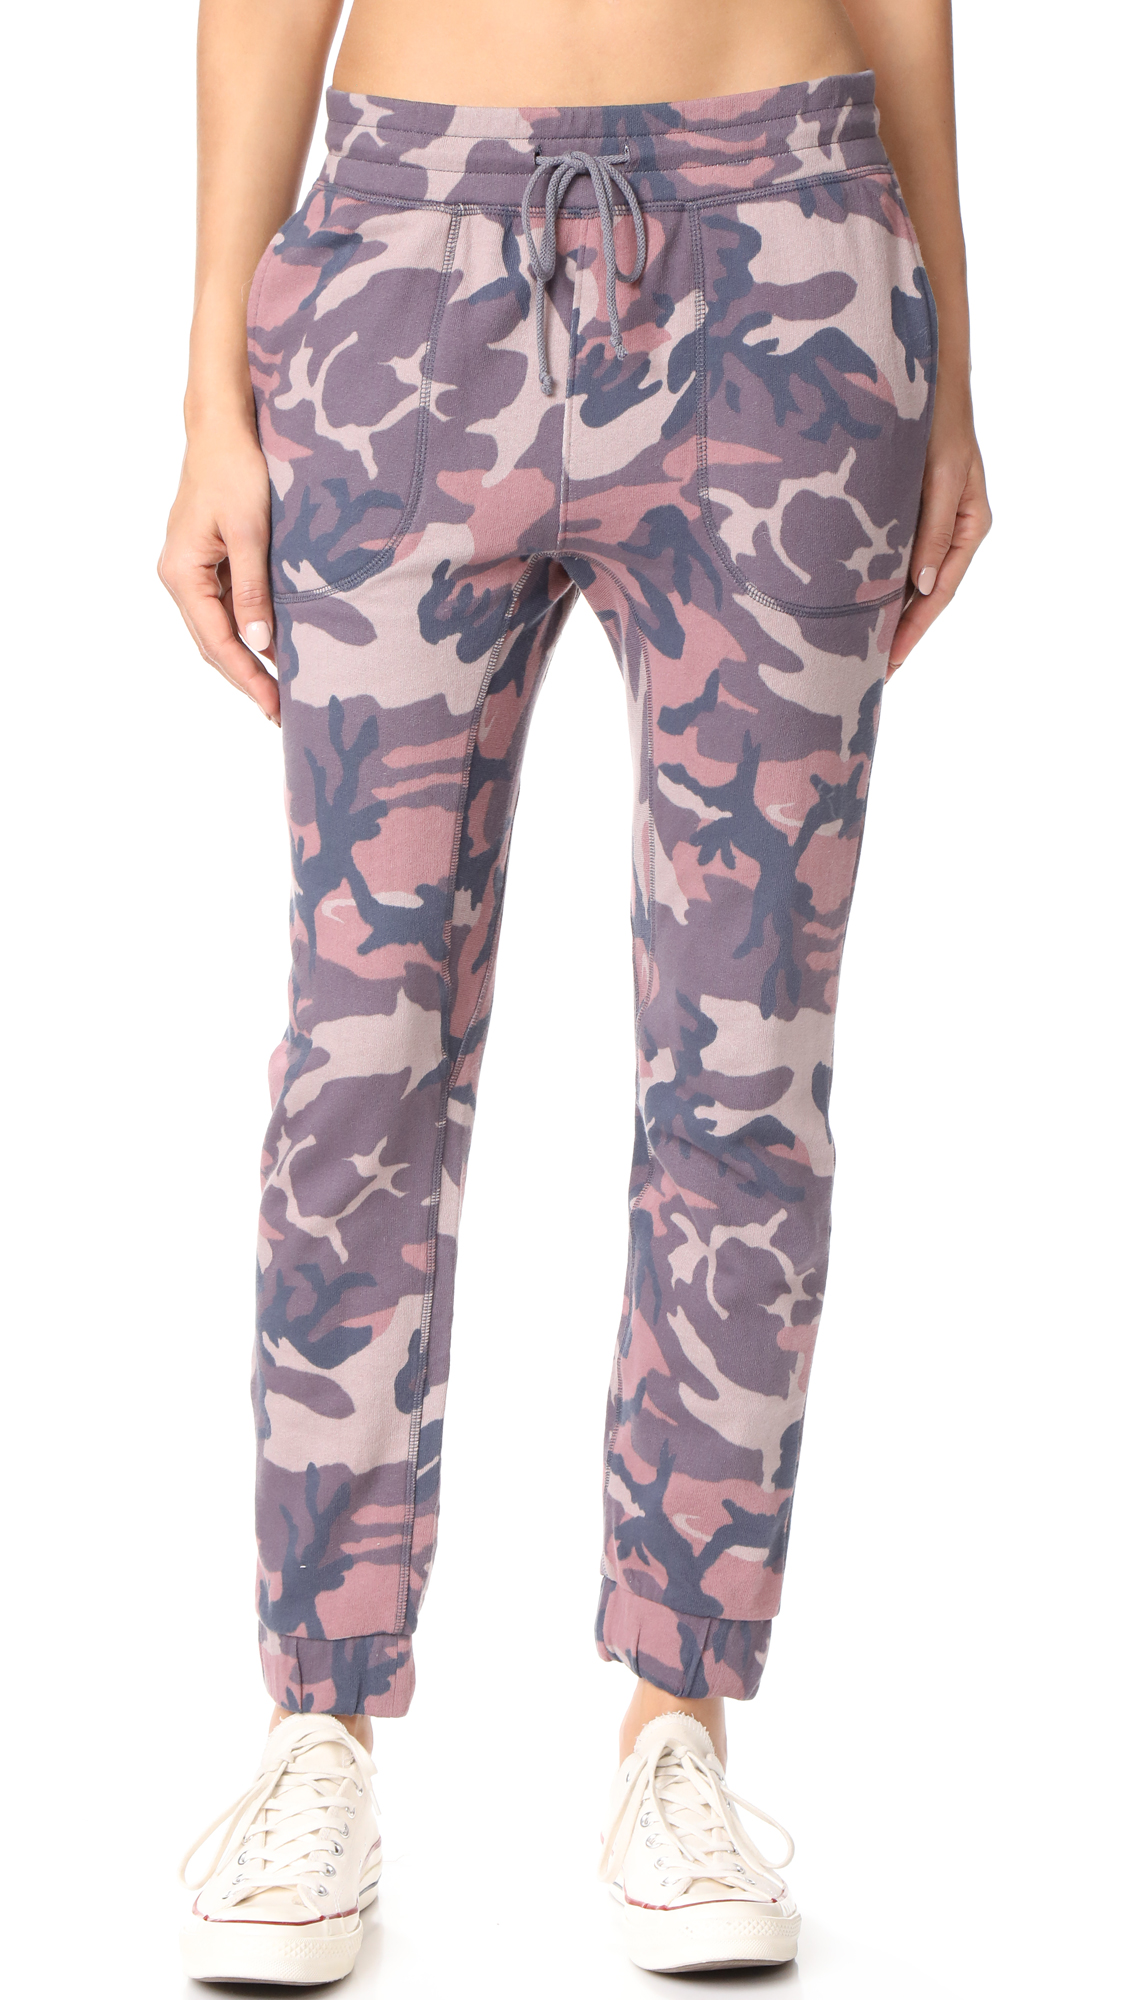 Free People Printed Camo Scout Joggers - Sand